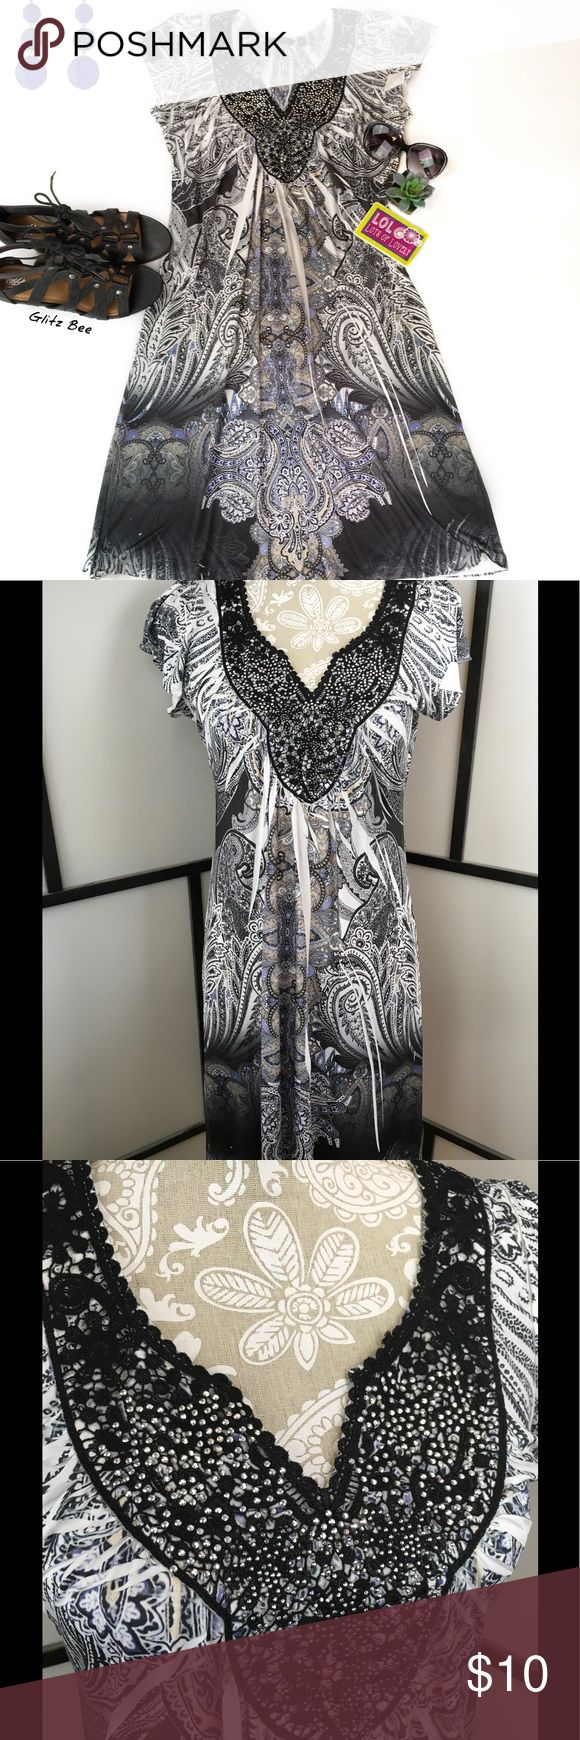 Black and White Sparkly Summer Dress, Large Sparkly black and white dress with extra soft polyester/spandex material and sparkles at the neckline. Size is petite large, and there are no flaws to note. Bust-19, Length-38.  This will be your new favorite go-to dress when you need to be comfortable and look stylish. Apt. 9 Dresses Midi